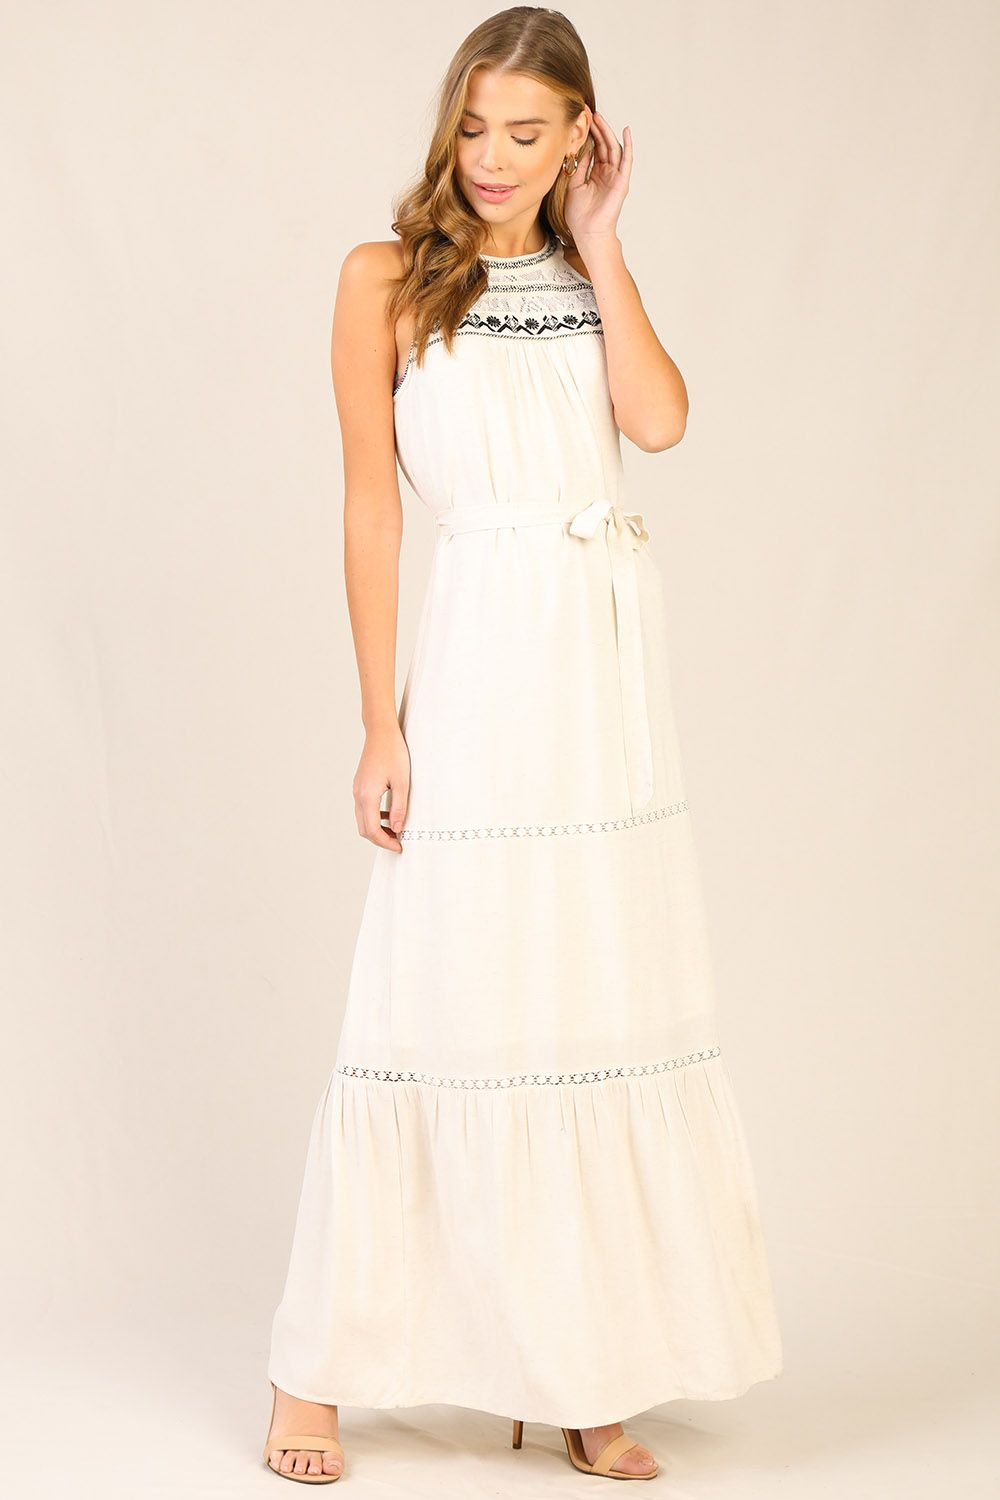 Ivory Halter Maxi Dress with Black Embroidered Detailing